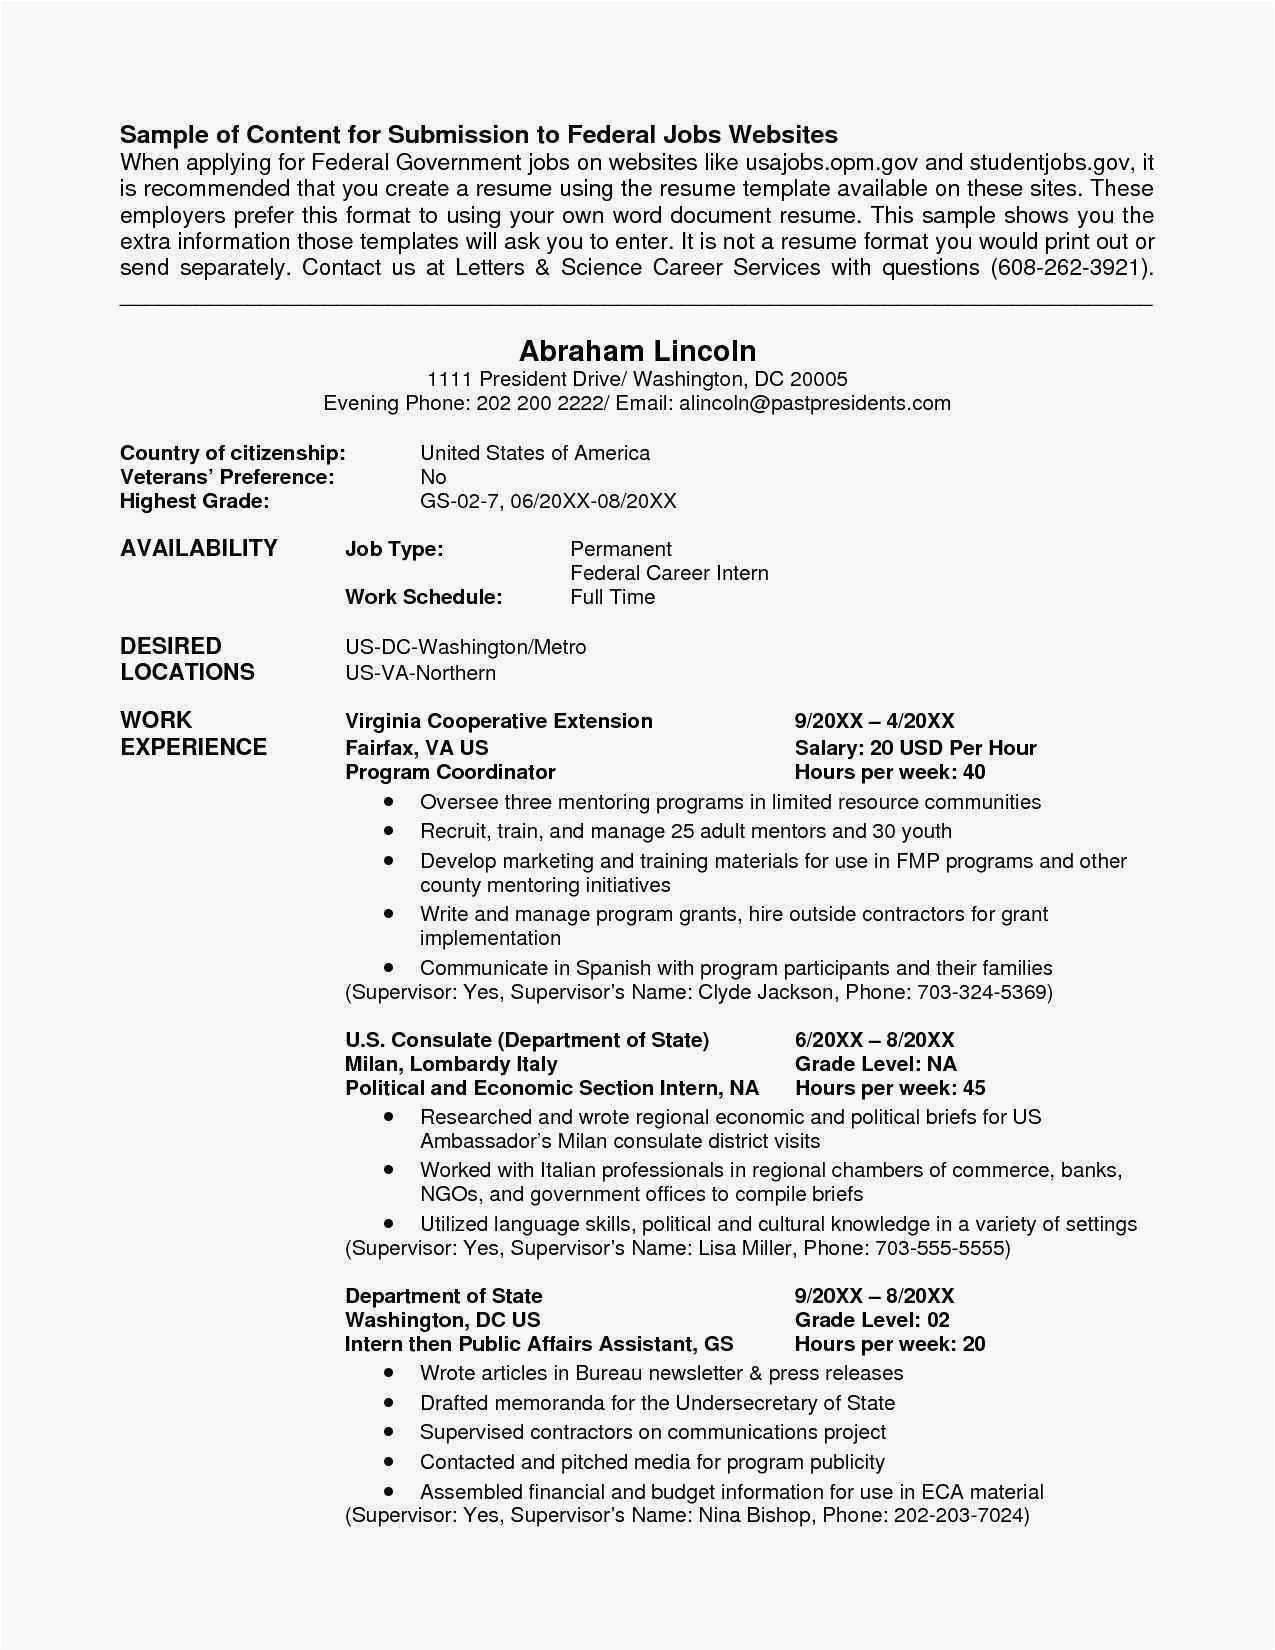 Resume for Driving Job - 23 Financial Resume Free Download